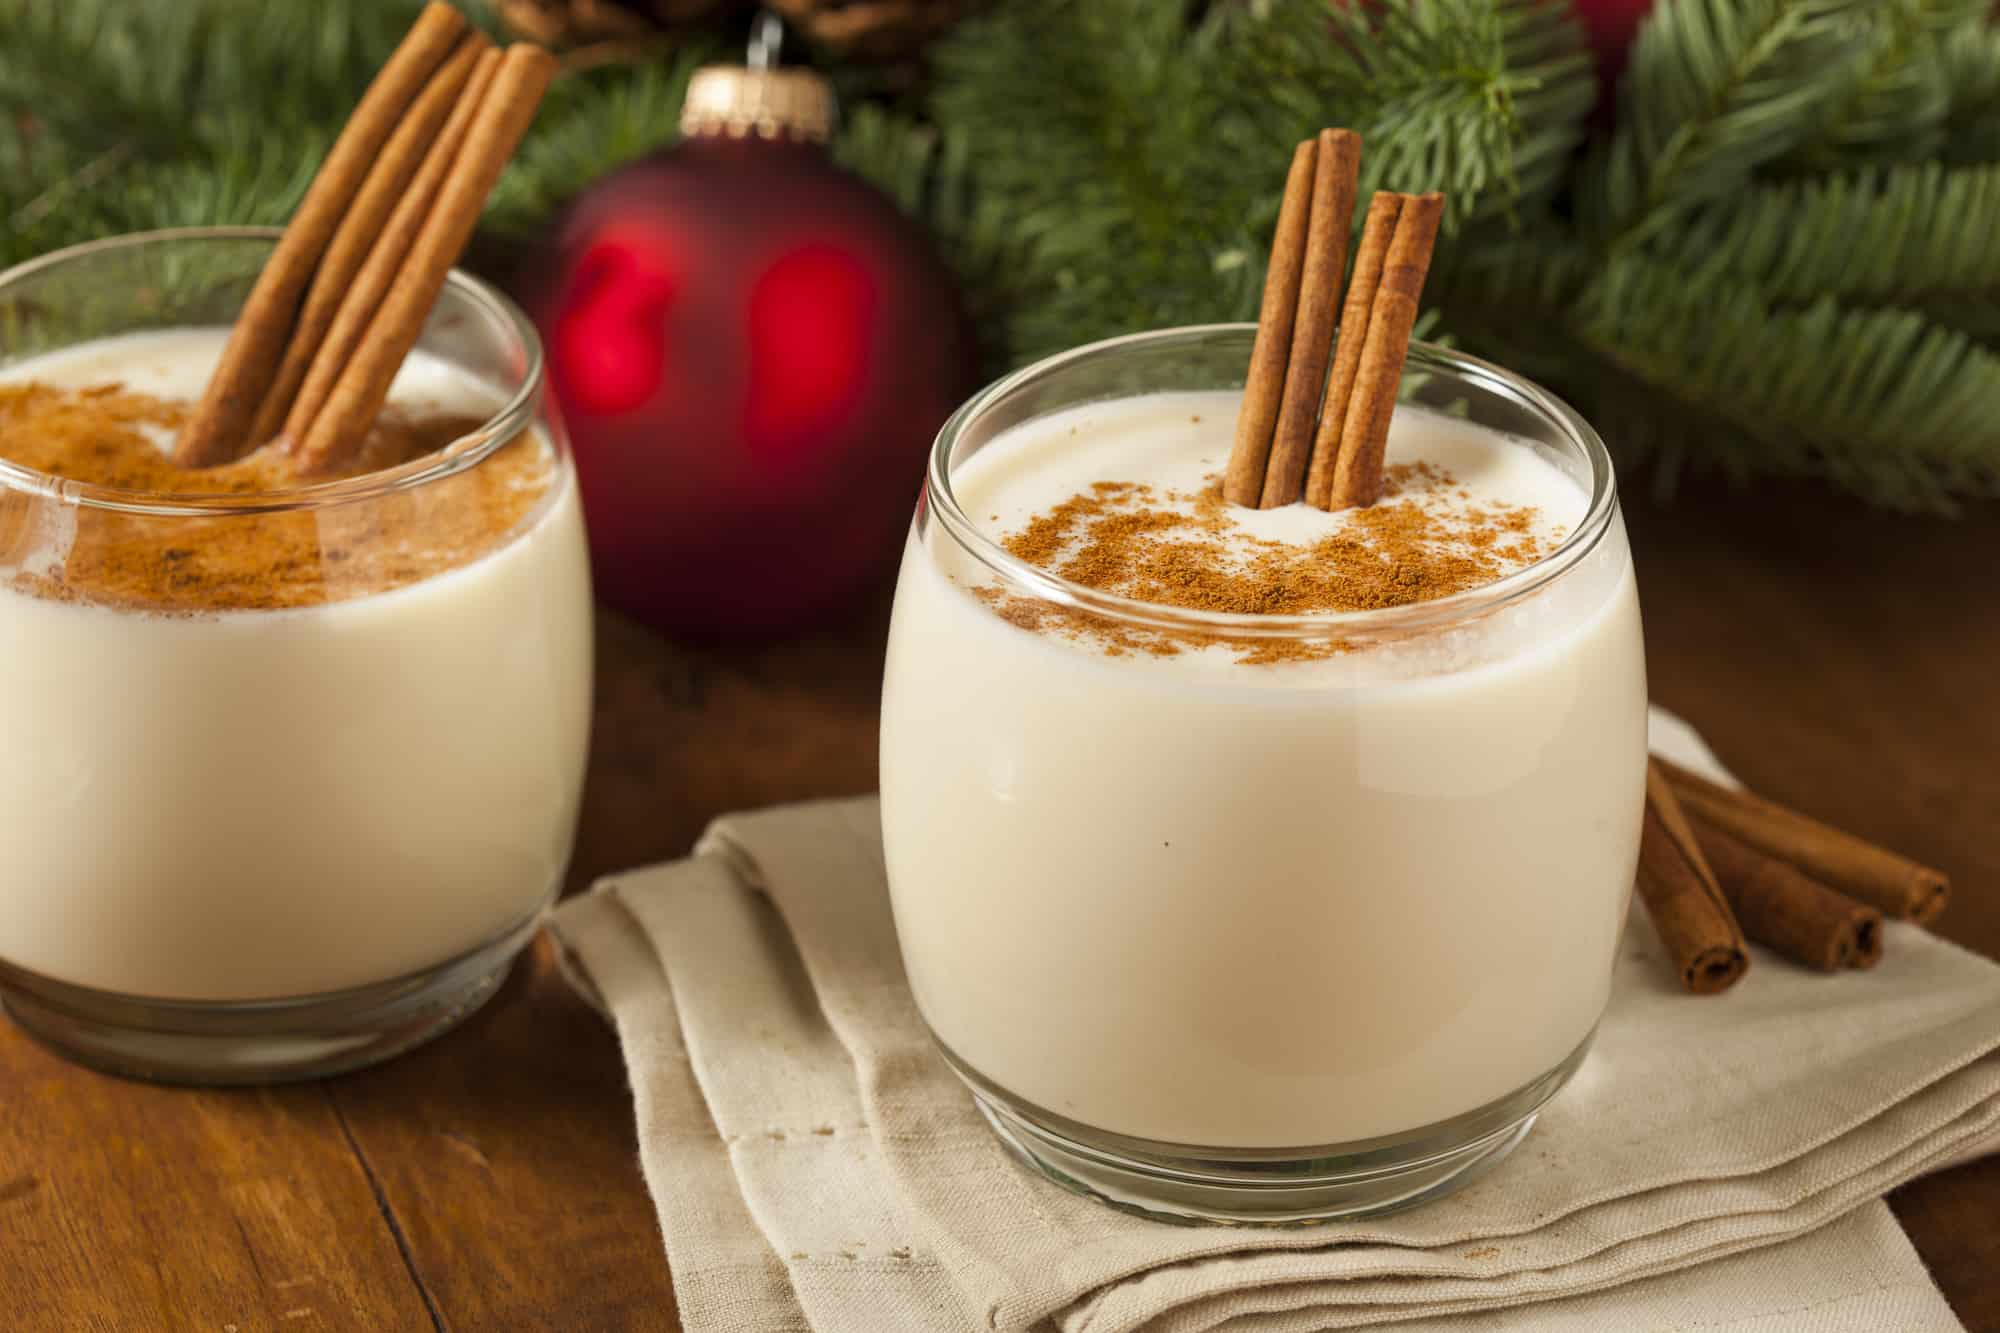 Two glasses of decadent, creamy non-alcoholic eggnog with cinnamon sticks and Christmas decorations